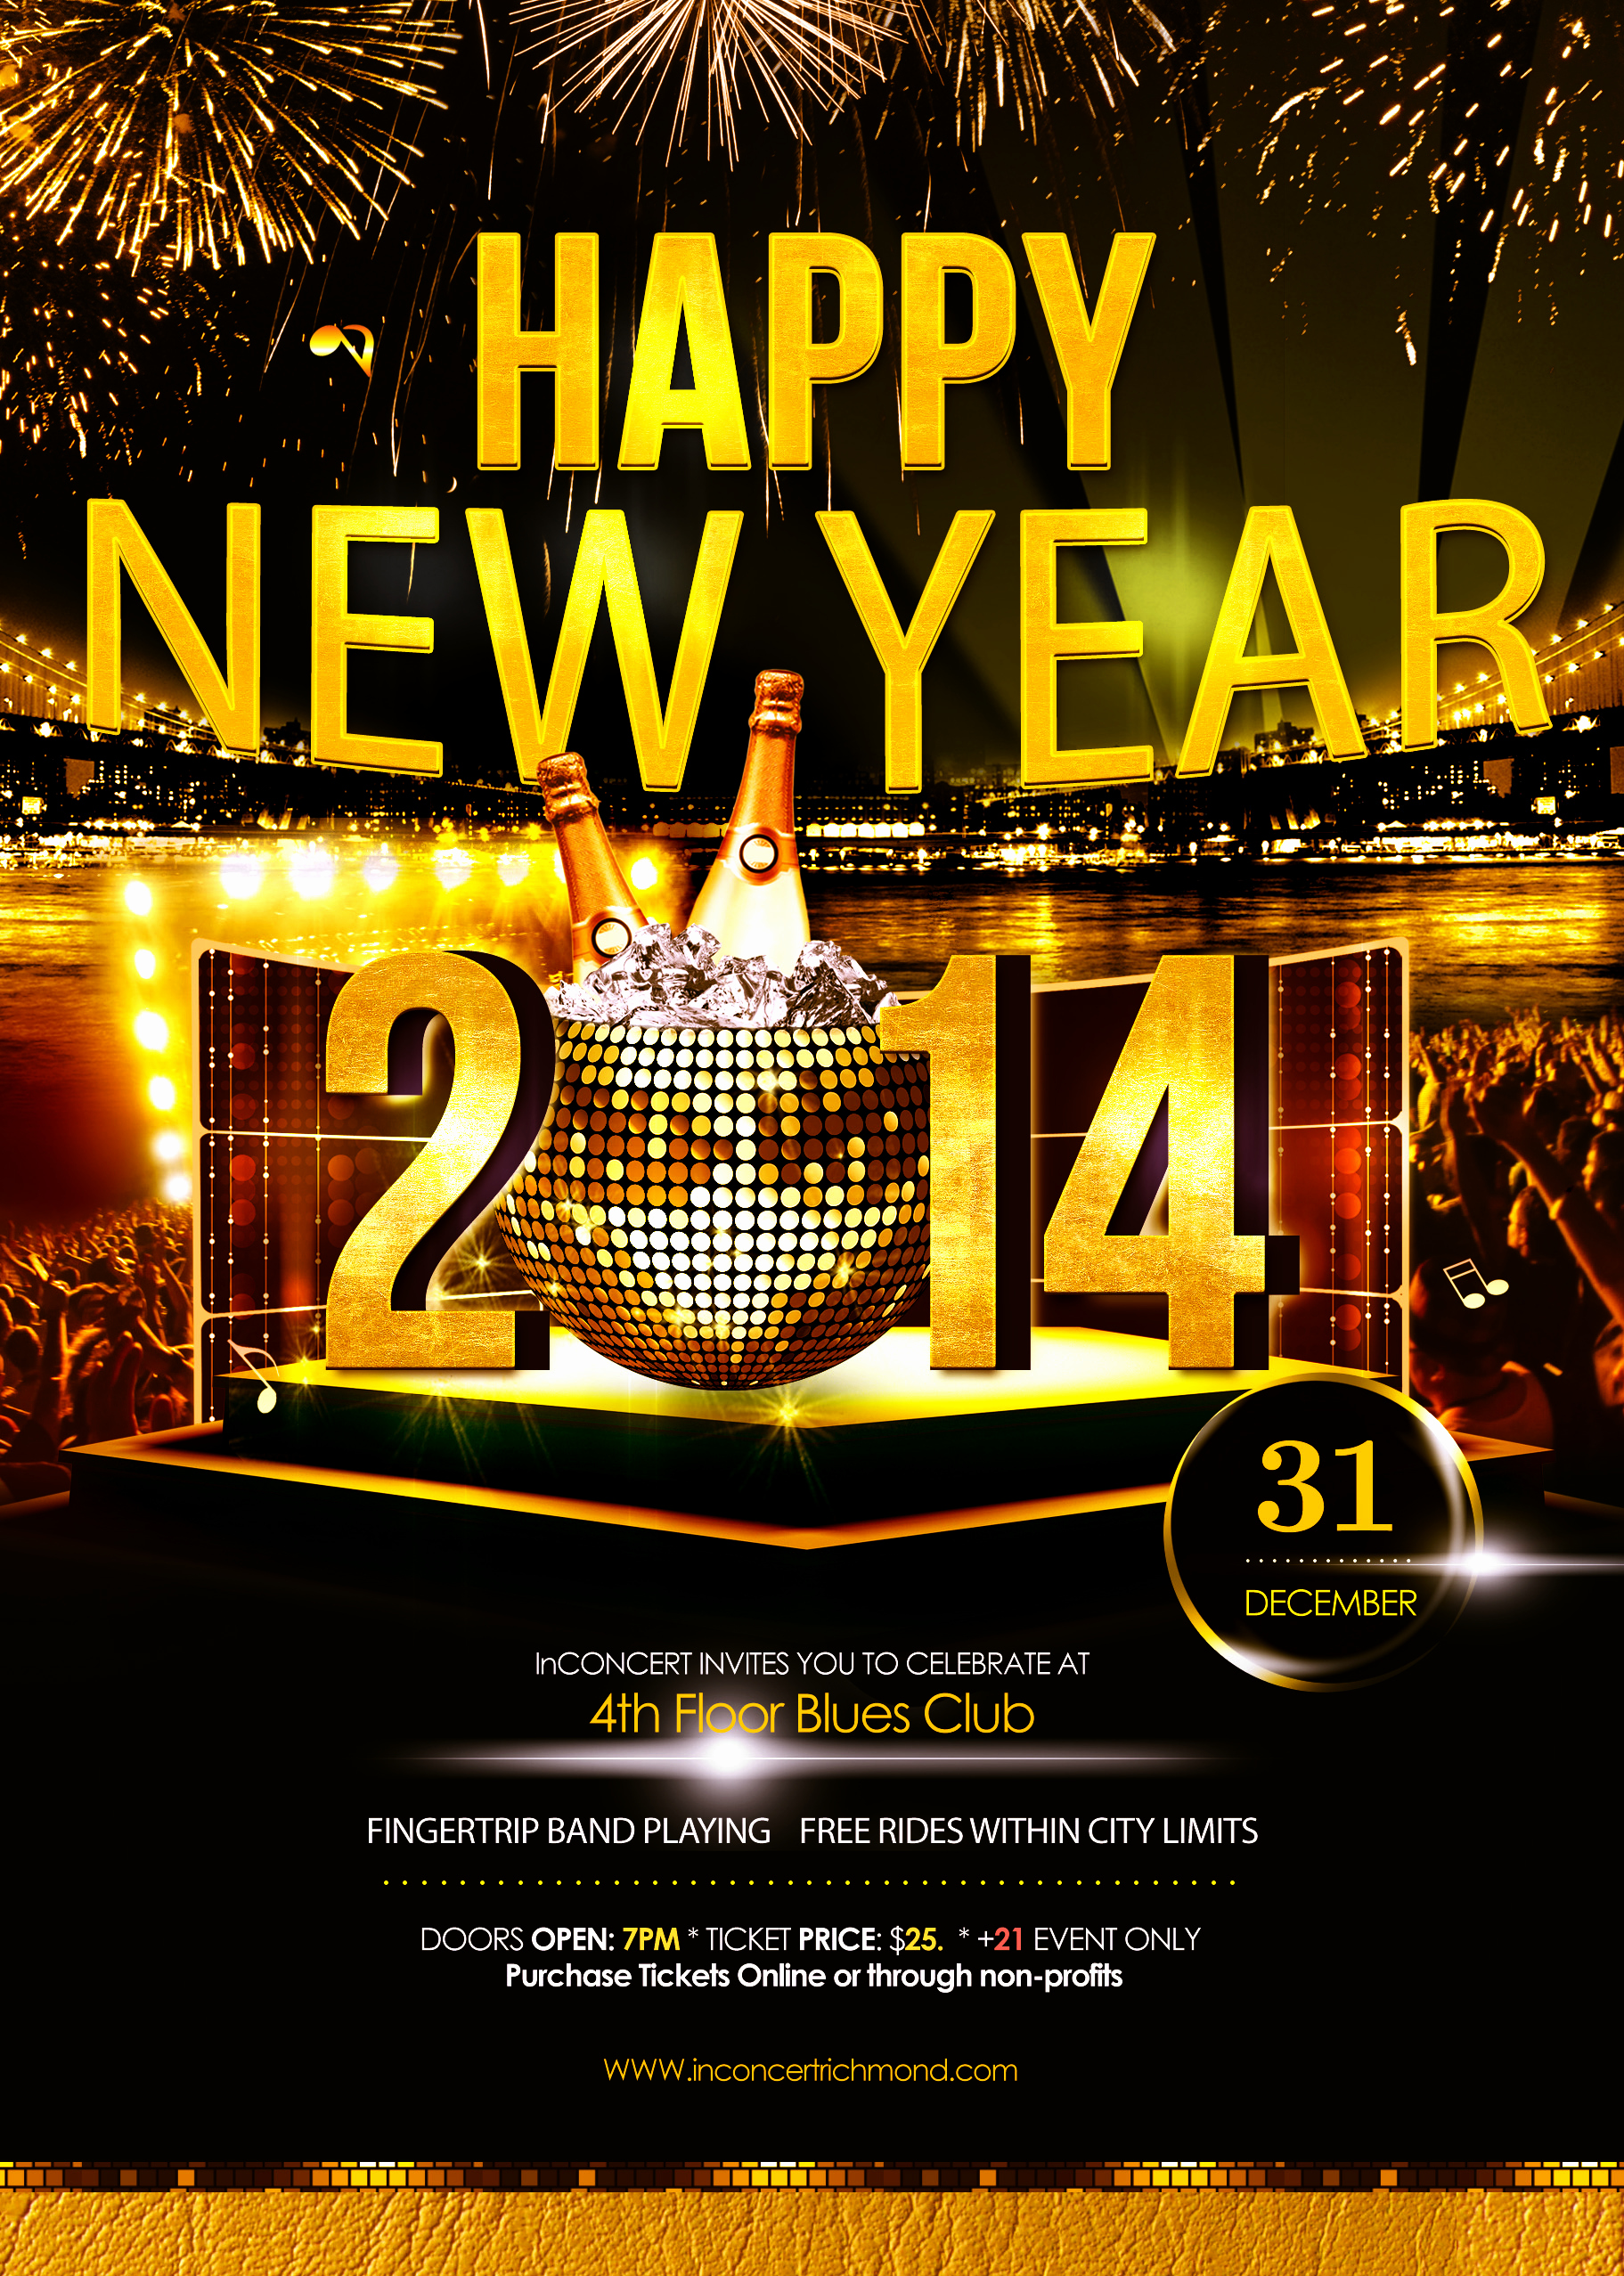 New Years Eve Flyer Elegant New Year S Eve Party at 4th Floor Blues Club